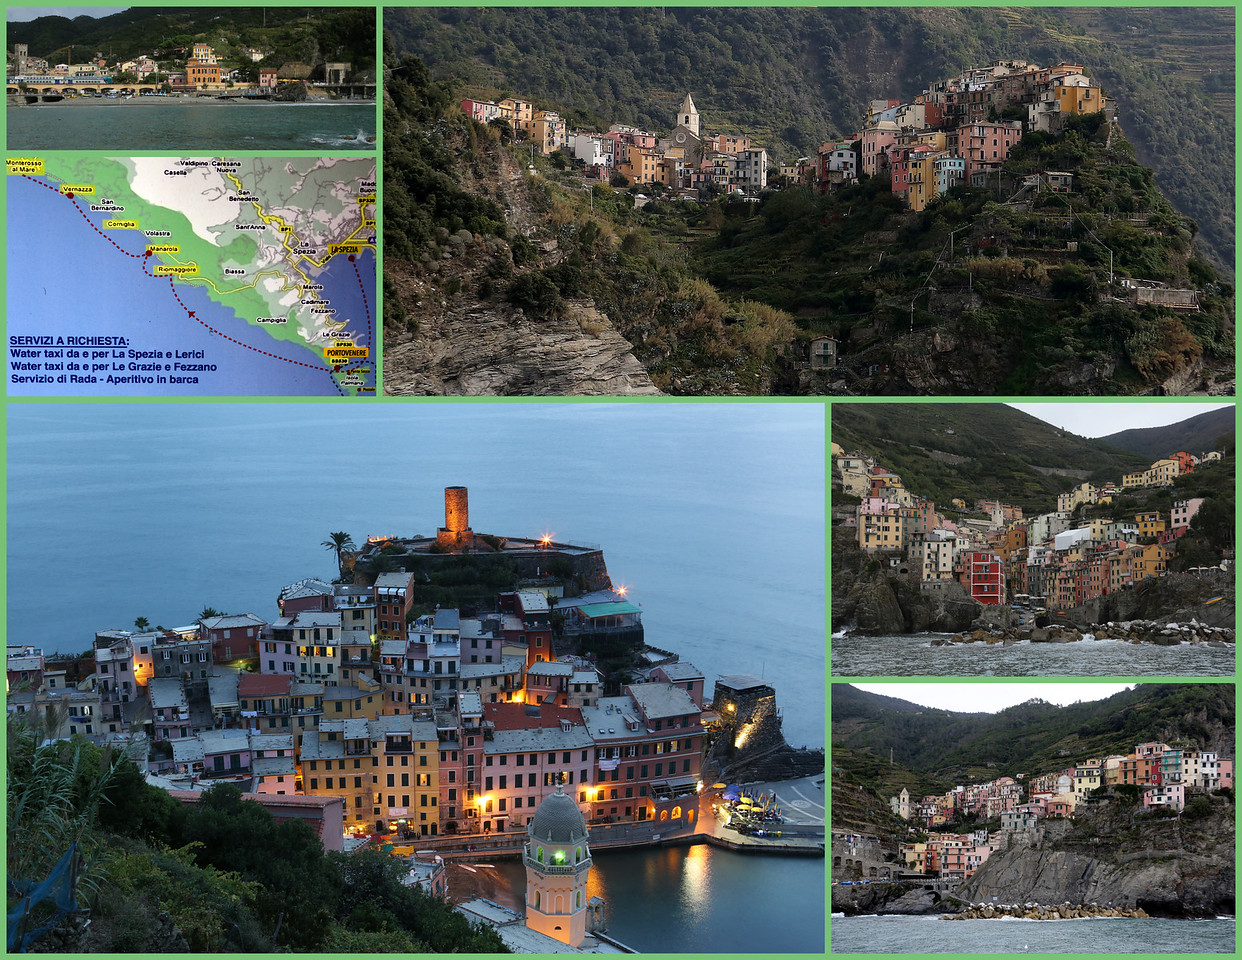 "The Cinque Terre ""Five Lands (Villages)"" from Lower Left Clockwise - Vernazza, our home base for 3 days, with the town center Harbor and Breakwater; Monterosso al Mare, the most beach resort Riveria style; Corniglias, the quiet town not on the water; Riomaggiore, described by Rick Steves' as ""a more laid-back and workaday"" of the Cinque Terre group and tiny and picturesque Manarola."